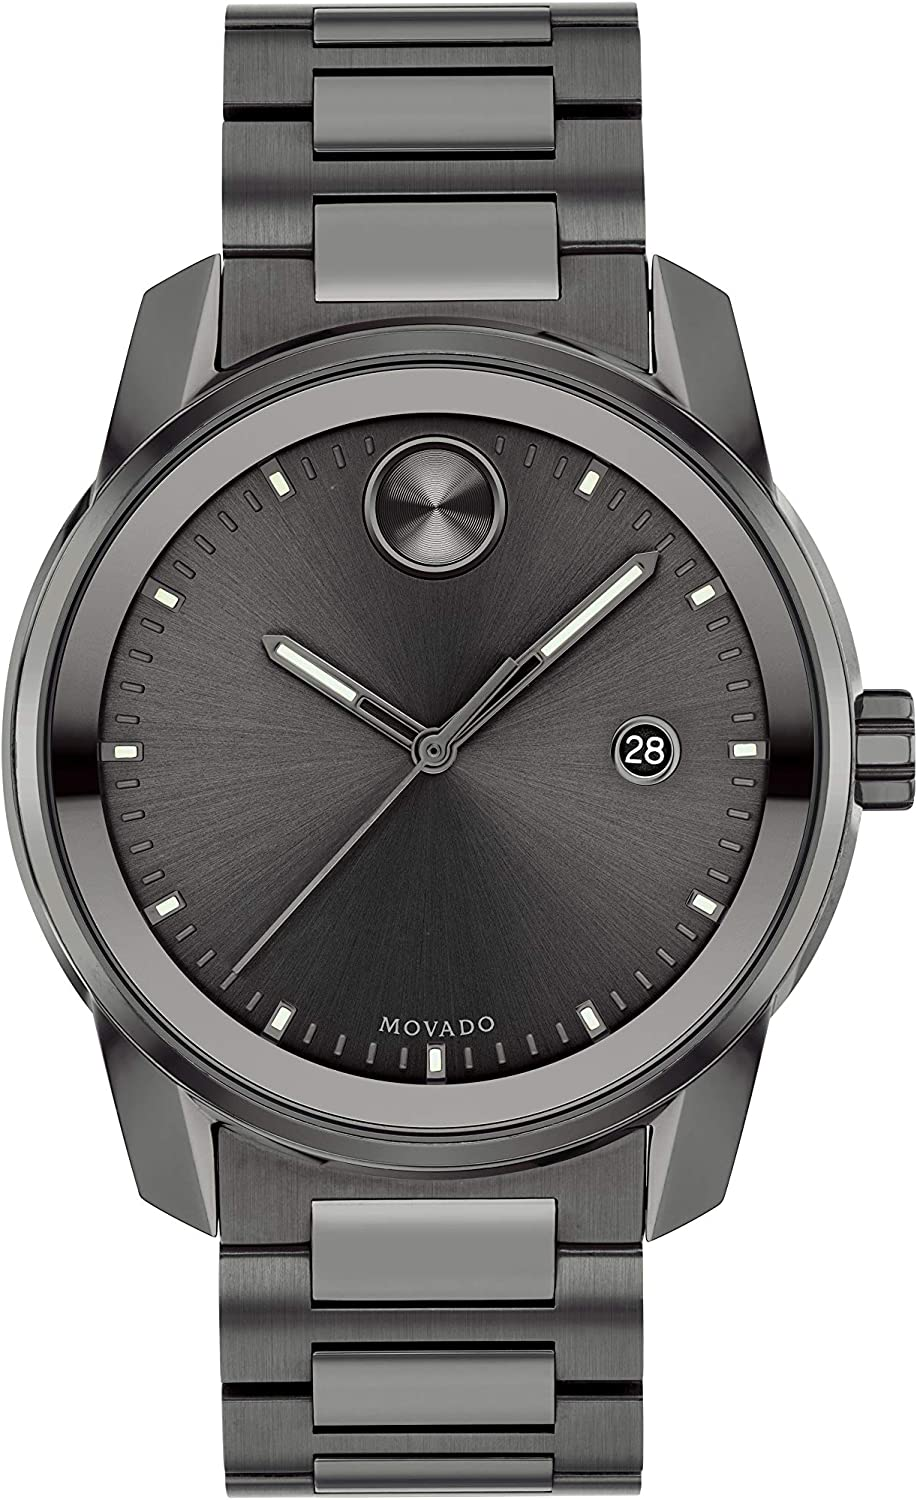 Movado Men's Swiss Quartz Direct sale of manufacturer Watch Strap Grey with Stainless SEAL limited product Steel